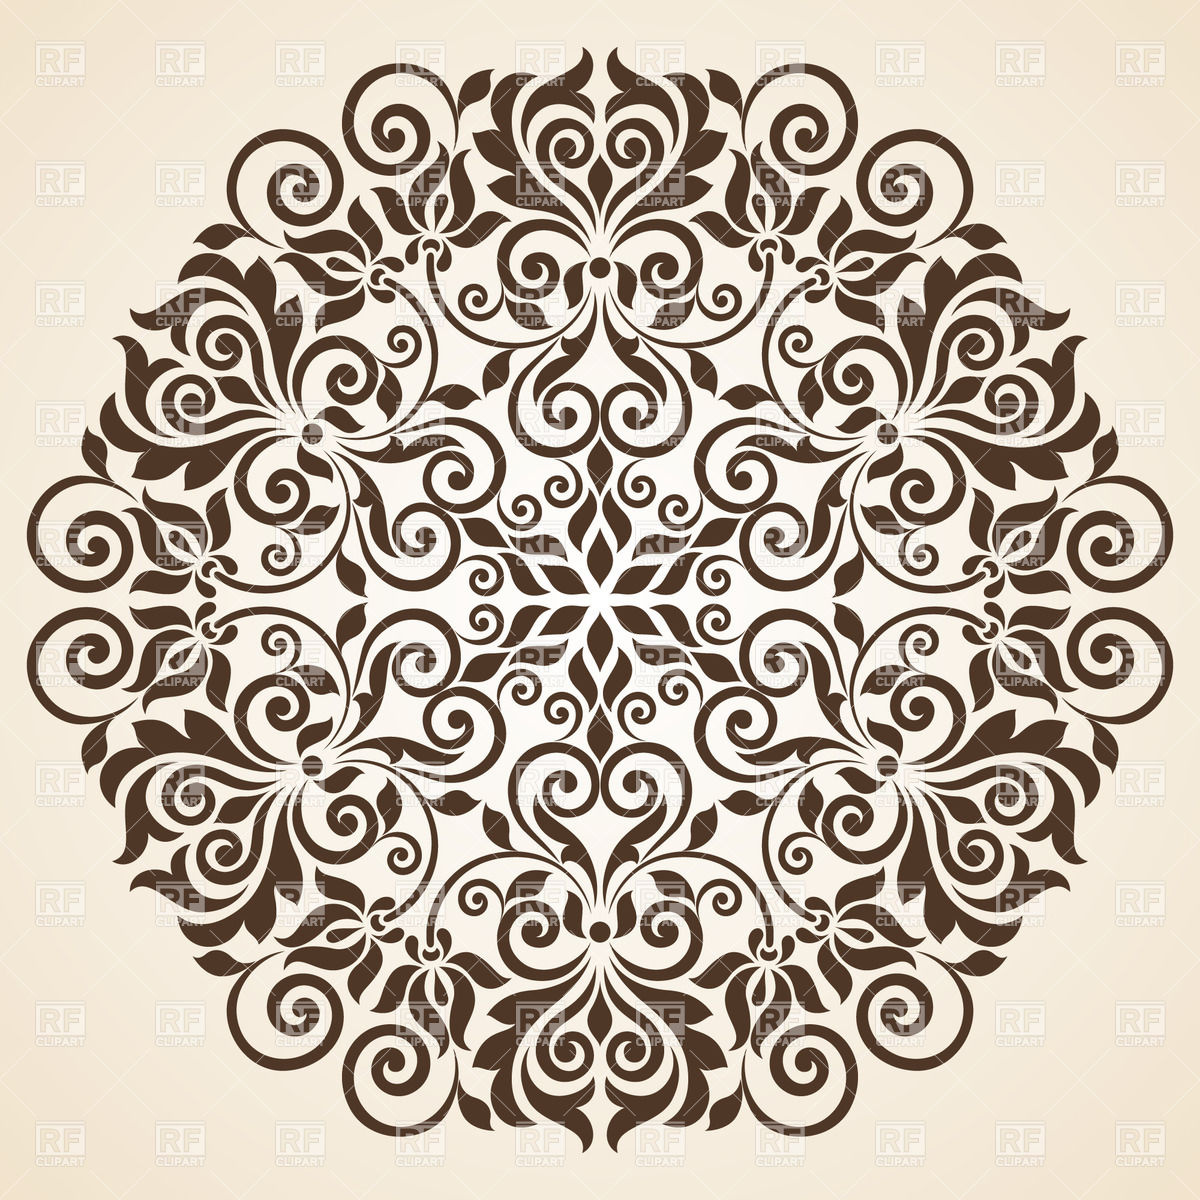 1200x1200 Round Floral Curly Ornament Vector Image Vector Artwork Of